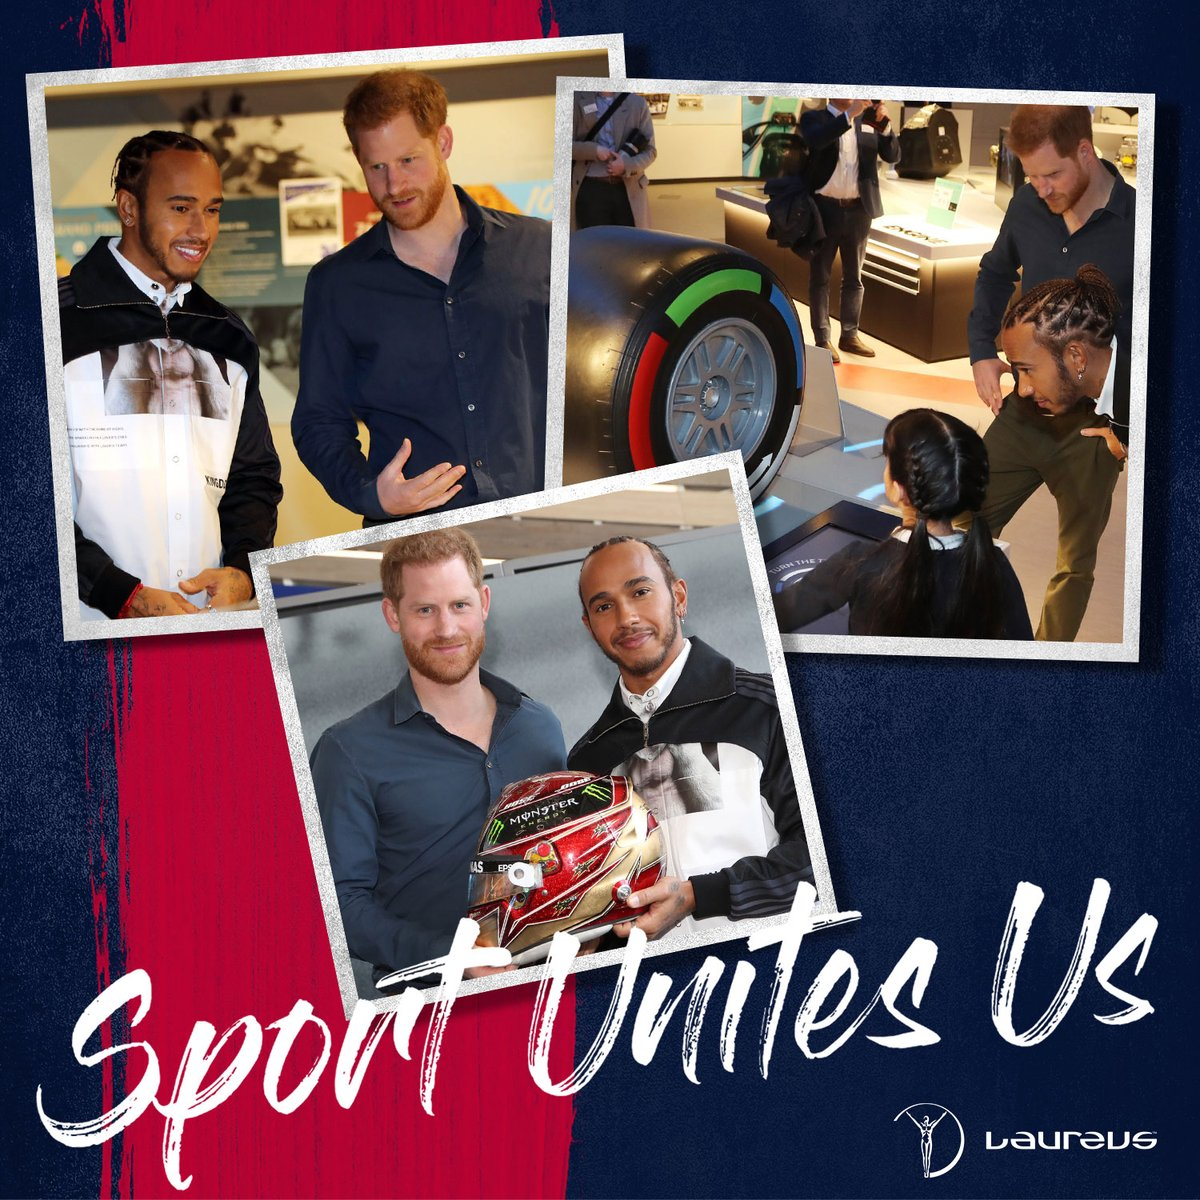 """""""Prince Harry and I opened the Silverstone Experience Centre. Their mission is to inspire the next generation of kids, in engineering, marshals, mechanics. This is something I am really passionate about, helping the next generation.""""  #SportUnitesUs"""